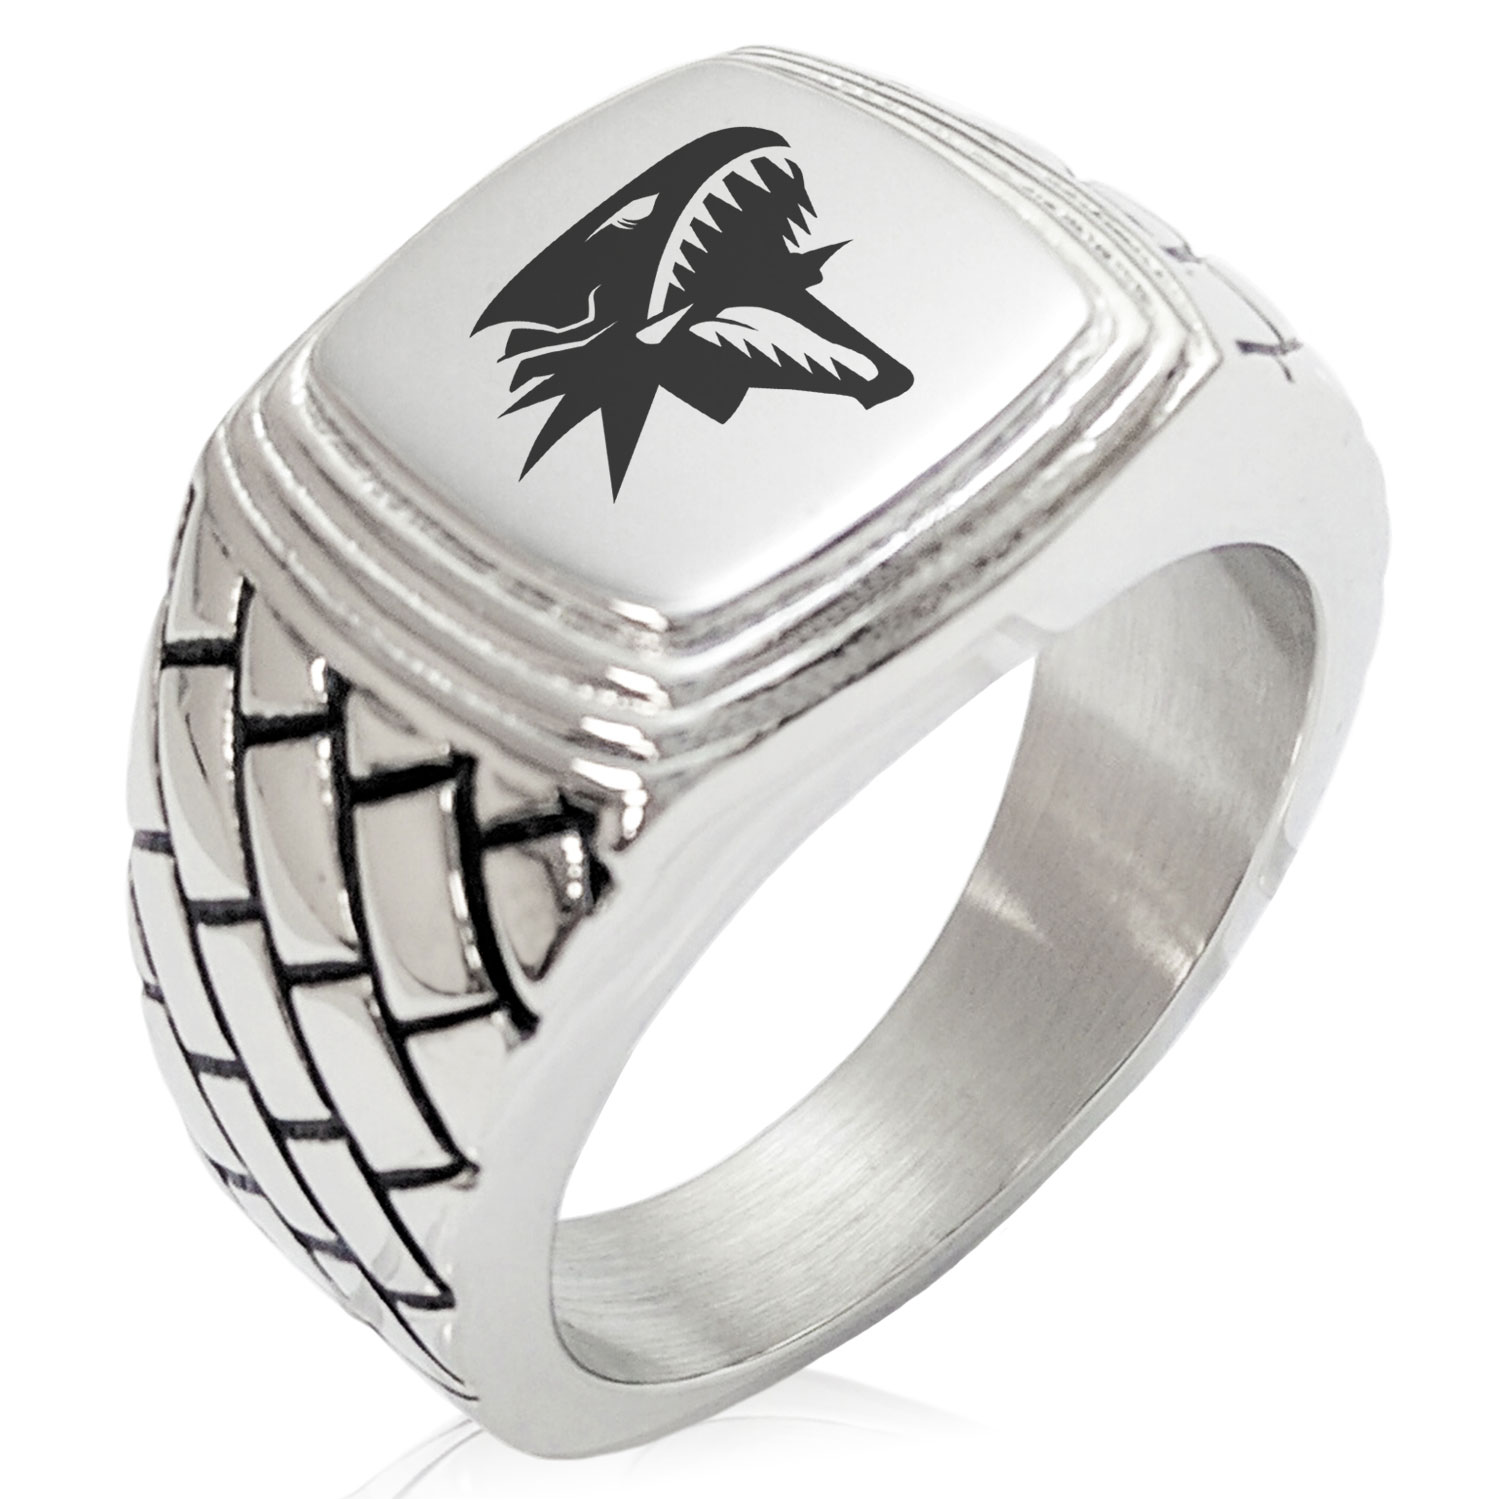 Tioneer Stainless Steel Pirate Anchor /& Pistols Emblem Chevron Pattern Biker Style Polished Ring